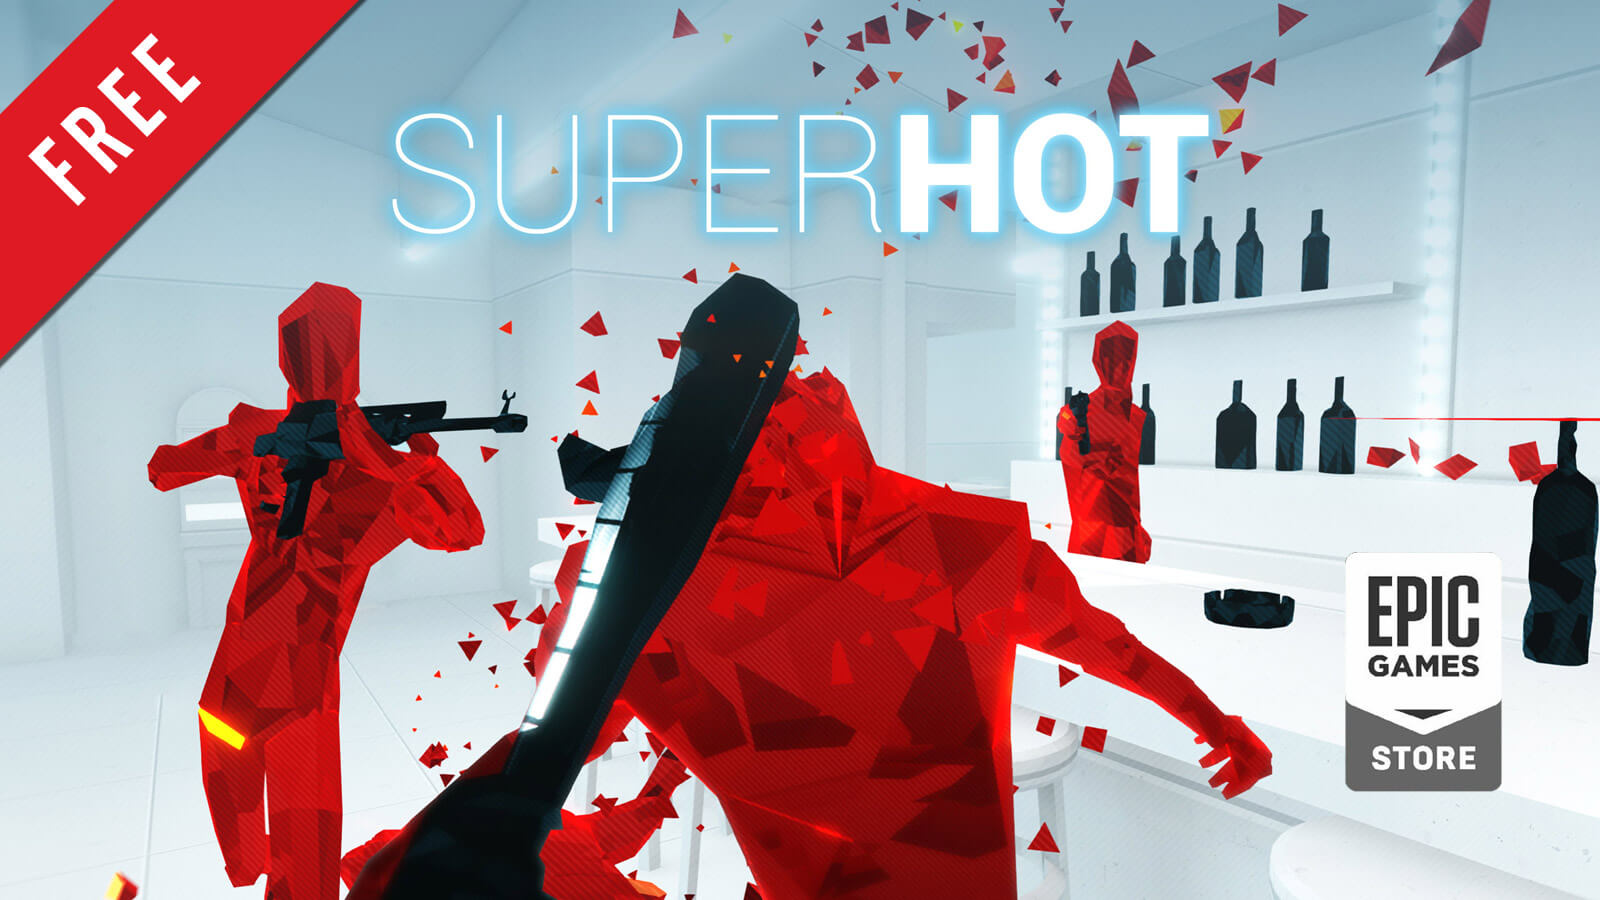 Superhot Free on Epic Games Store Now - Gameslaught